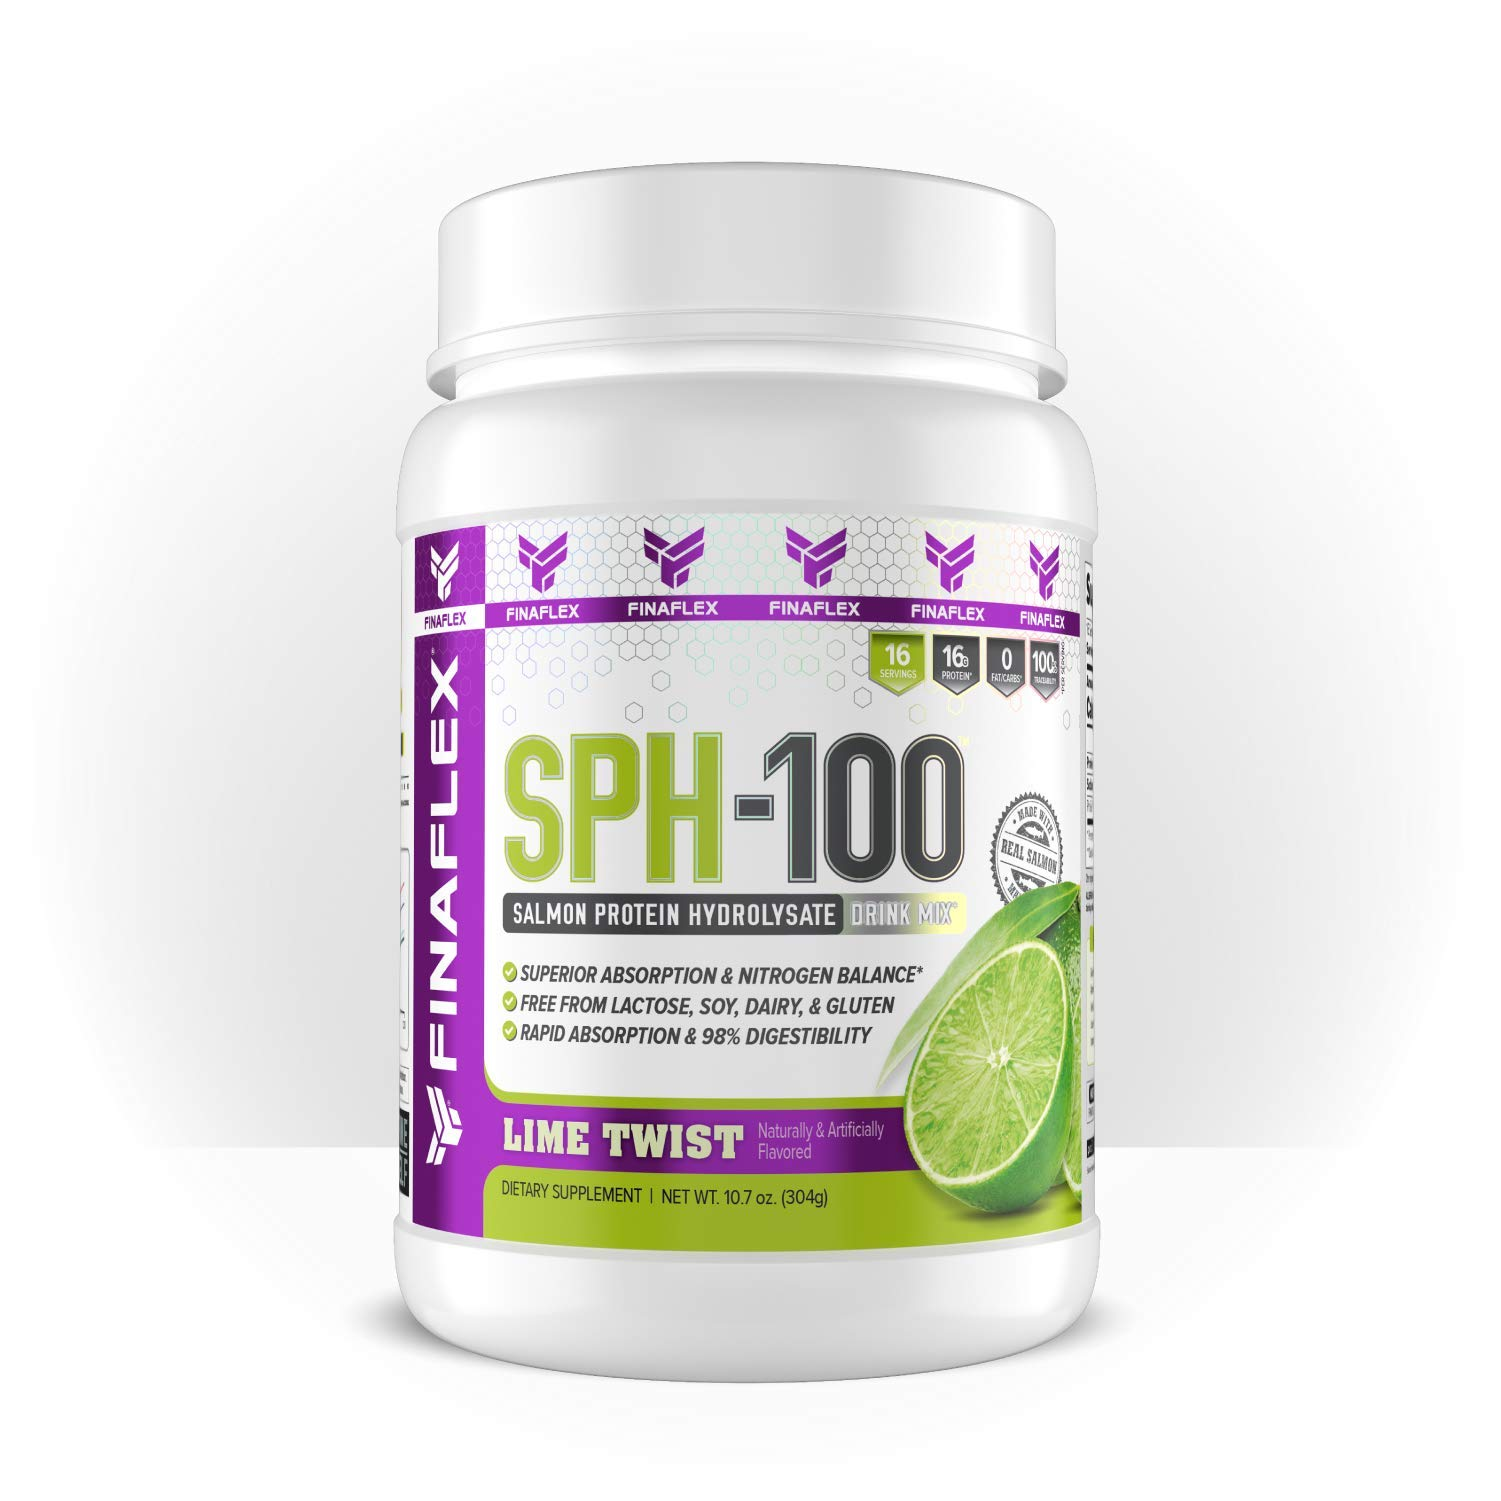 SPH-100, Salmon Protein Hydrolysate, 100% Norwegian Salmon, 16g Protein, 98% Digestibility, Sugar Free, Dairy Free, Soy Free, Lactose Free, Cholesterol Free, Sodium Free, 16 Svgs